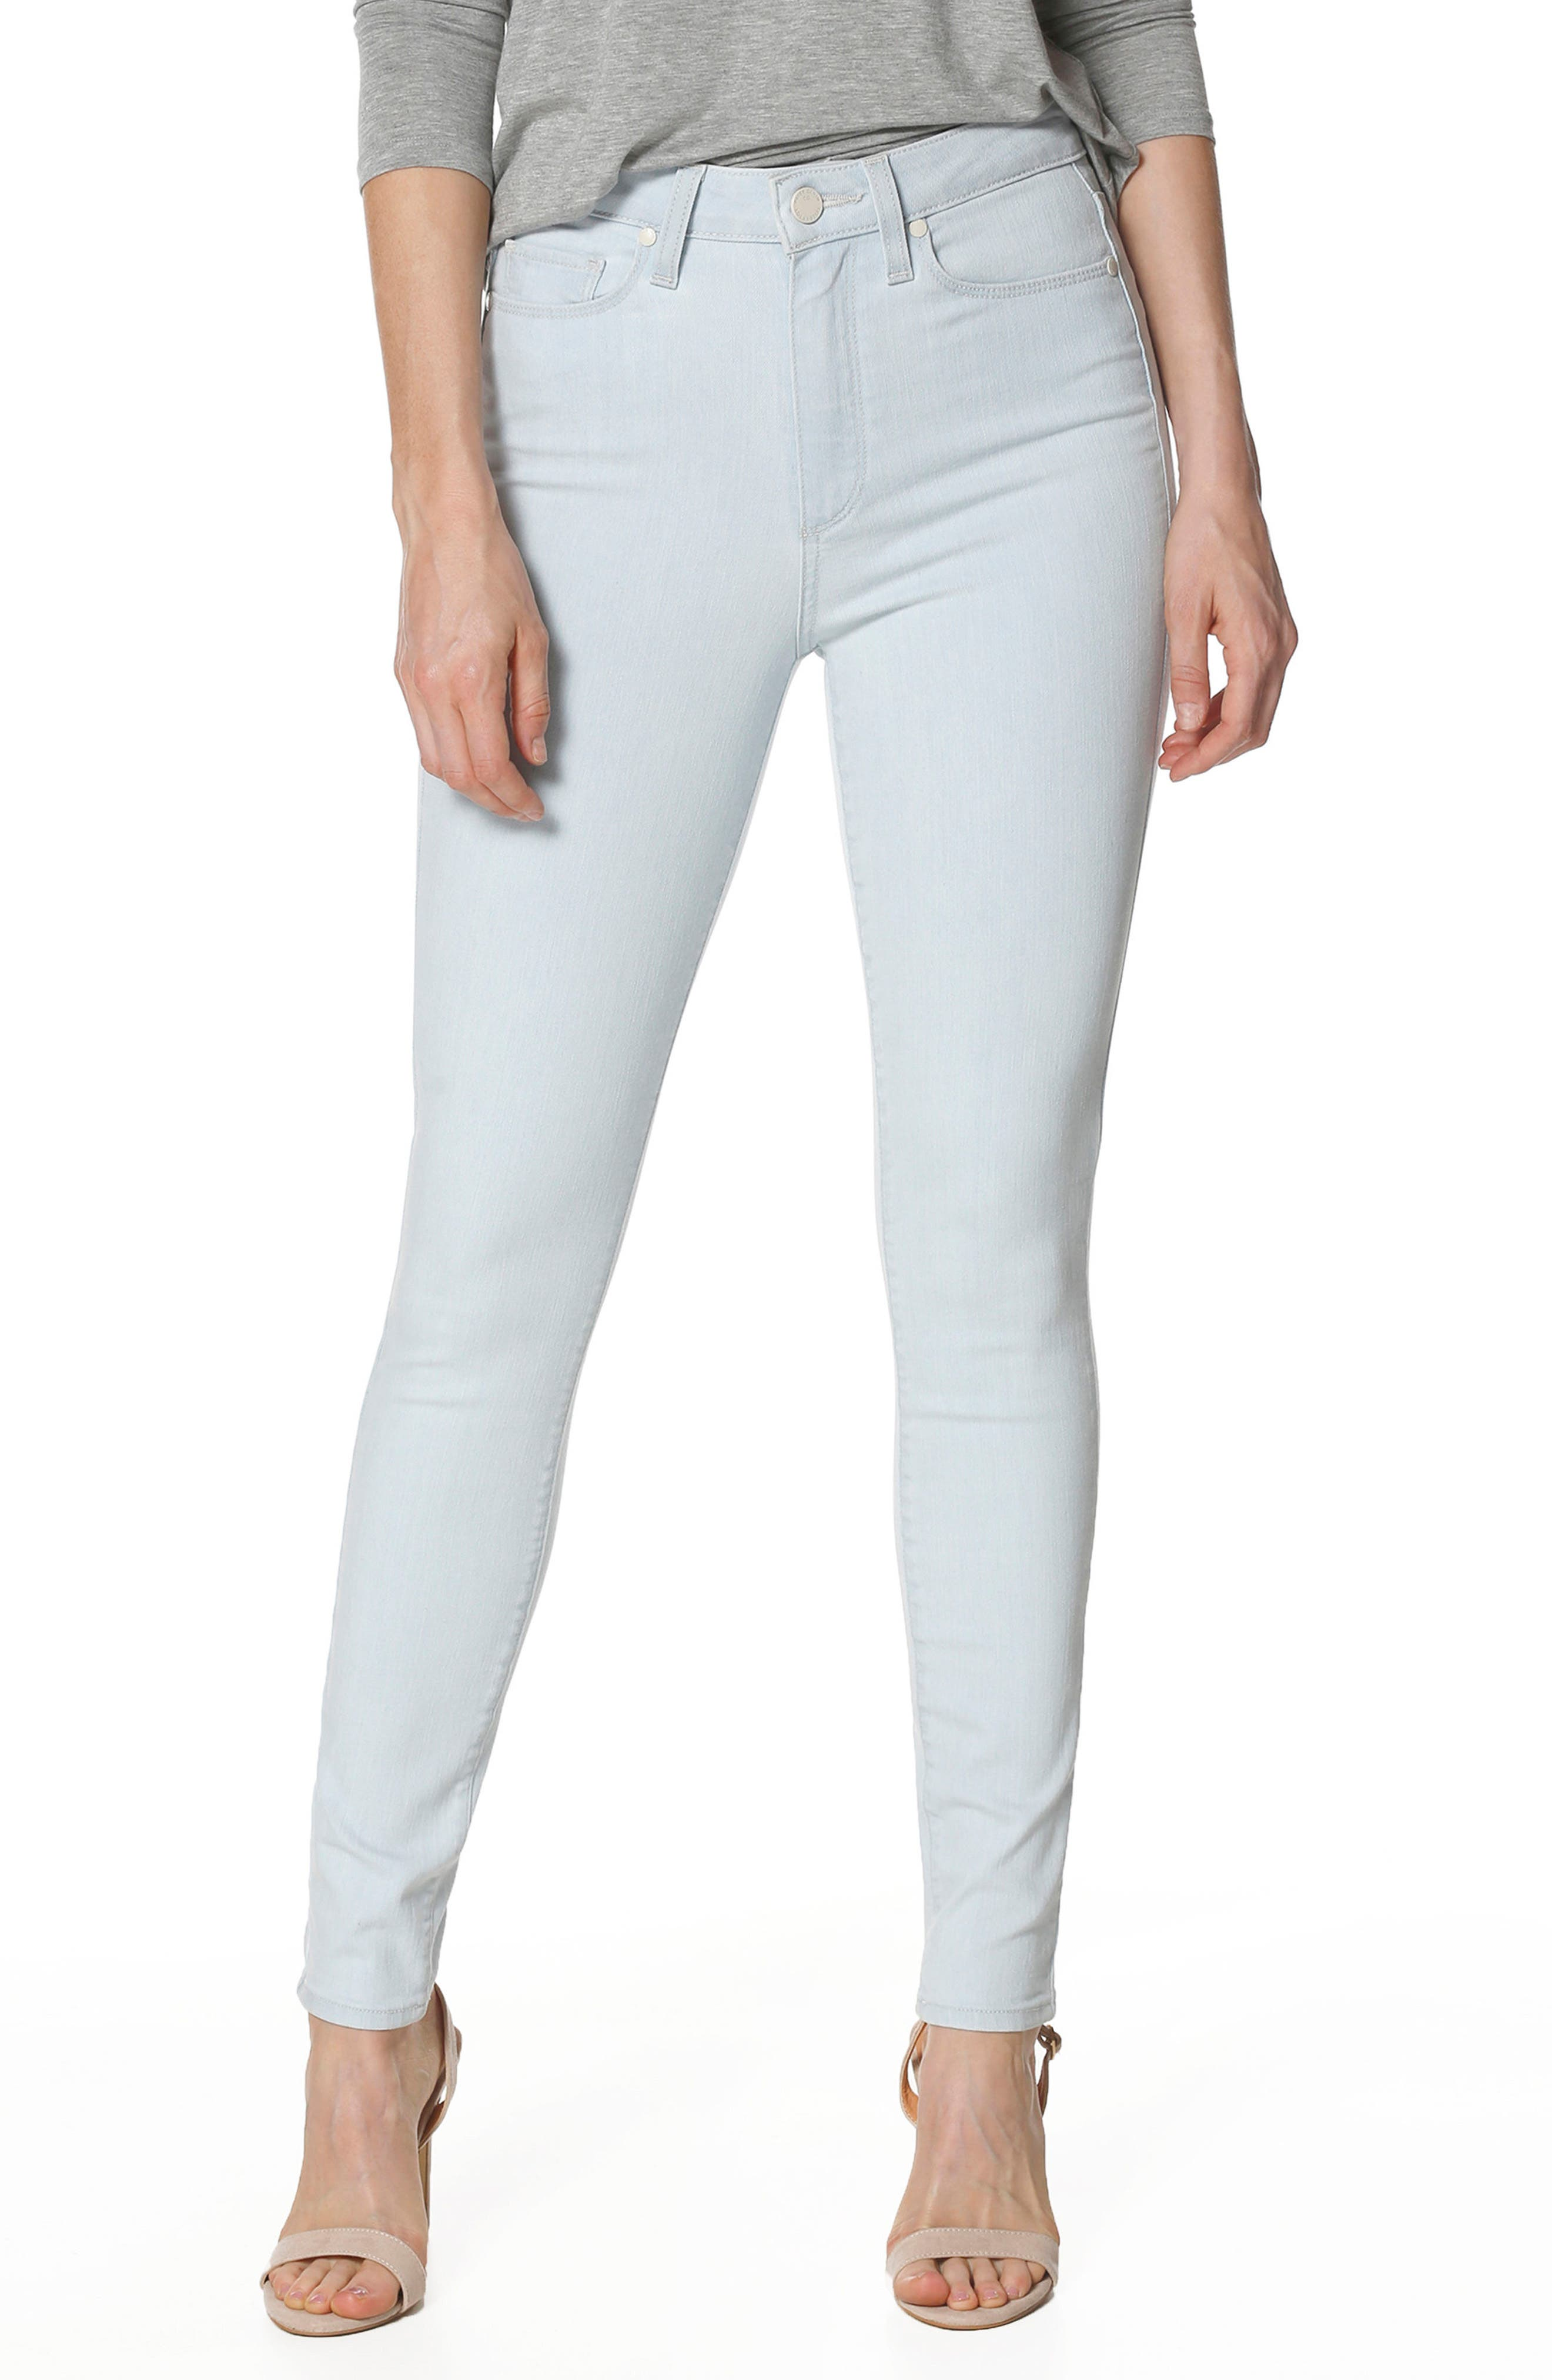 Alternate Image 1 Selected - PAIGE Margot High Waist Ultra Skinny Jeans (Kelso)